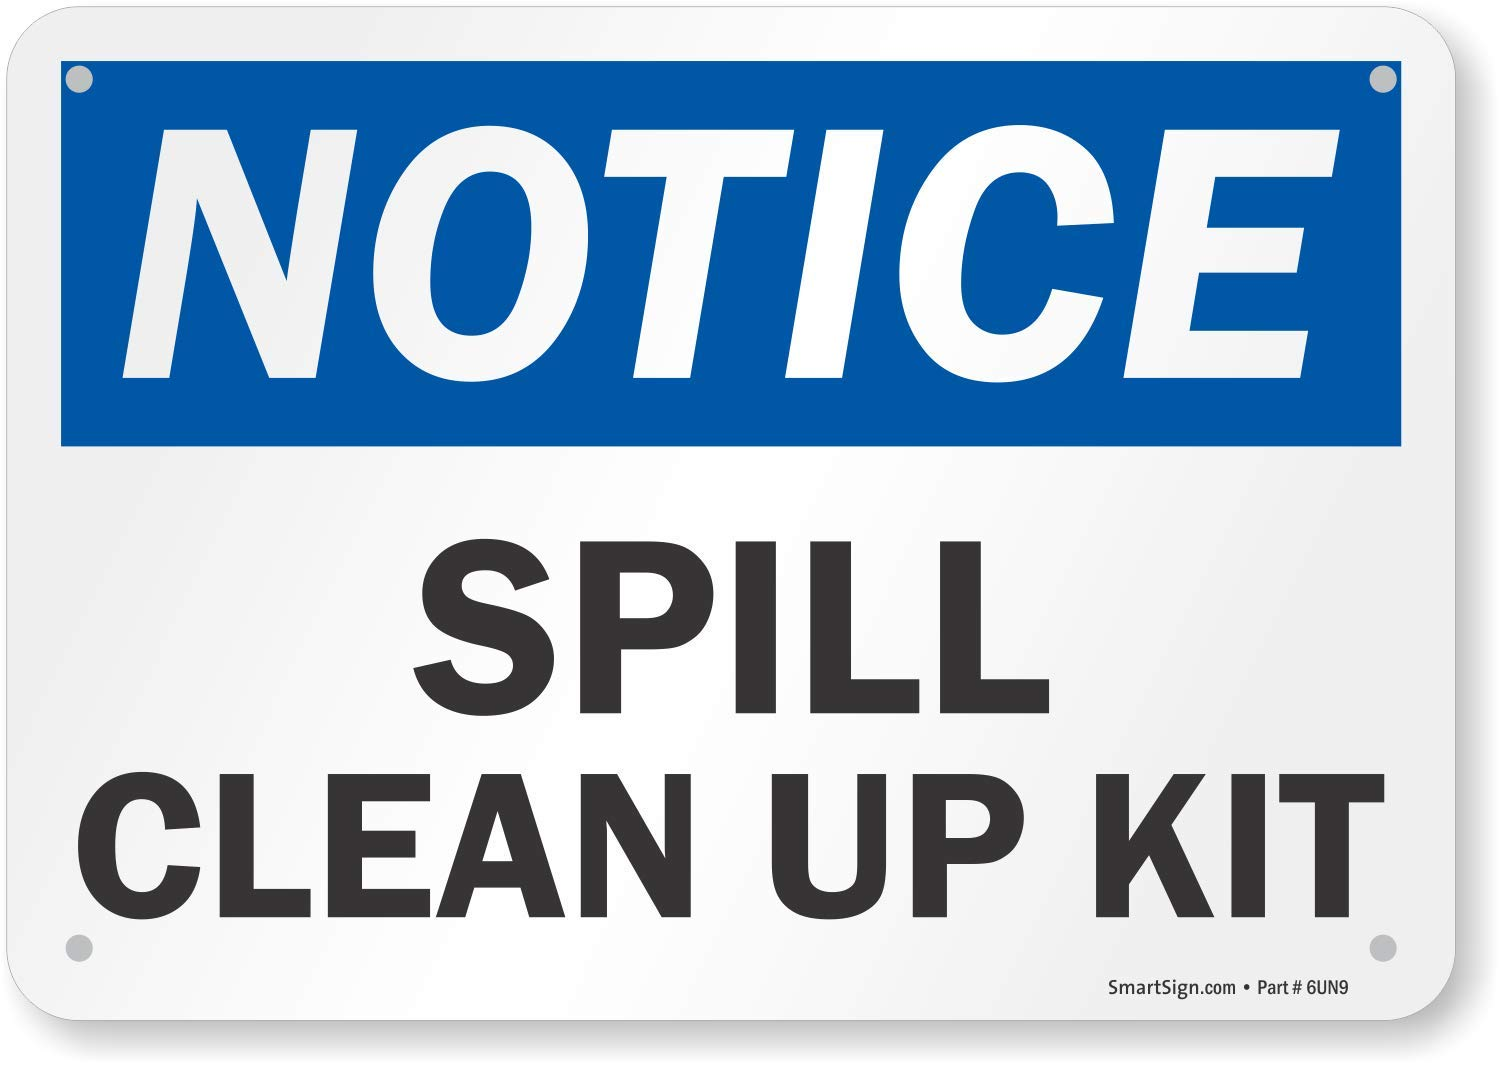 Cleaning up a spill